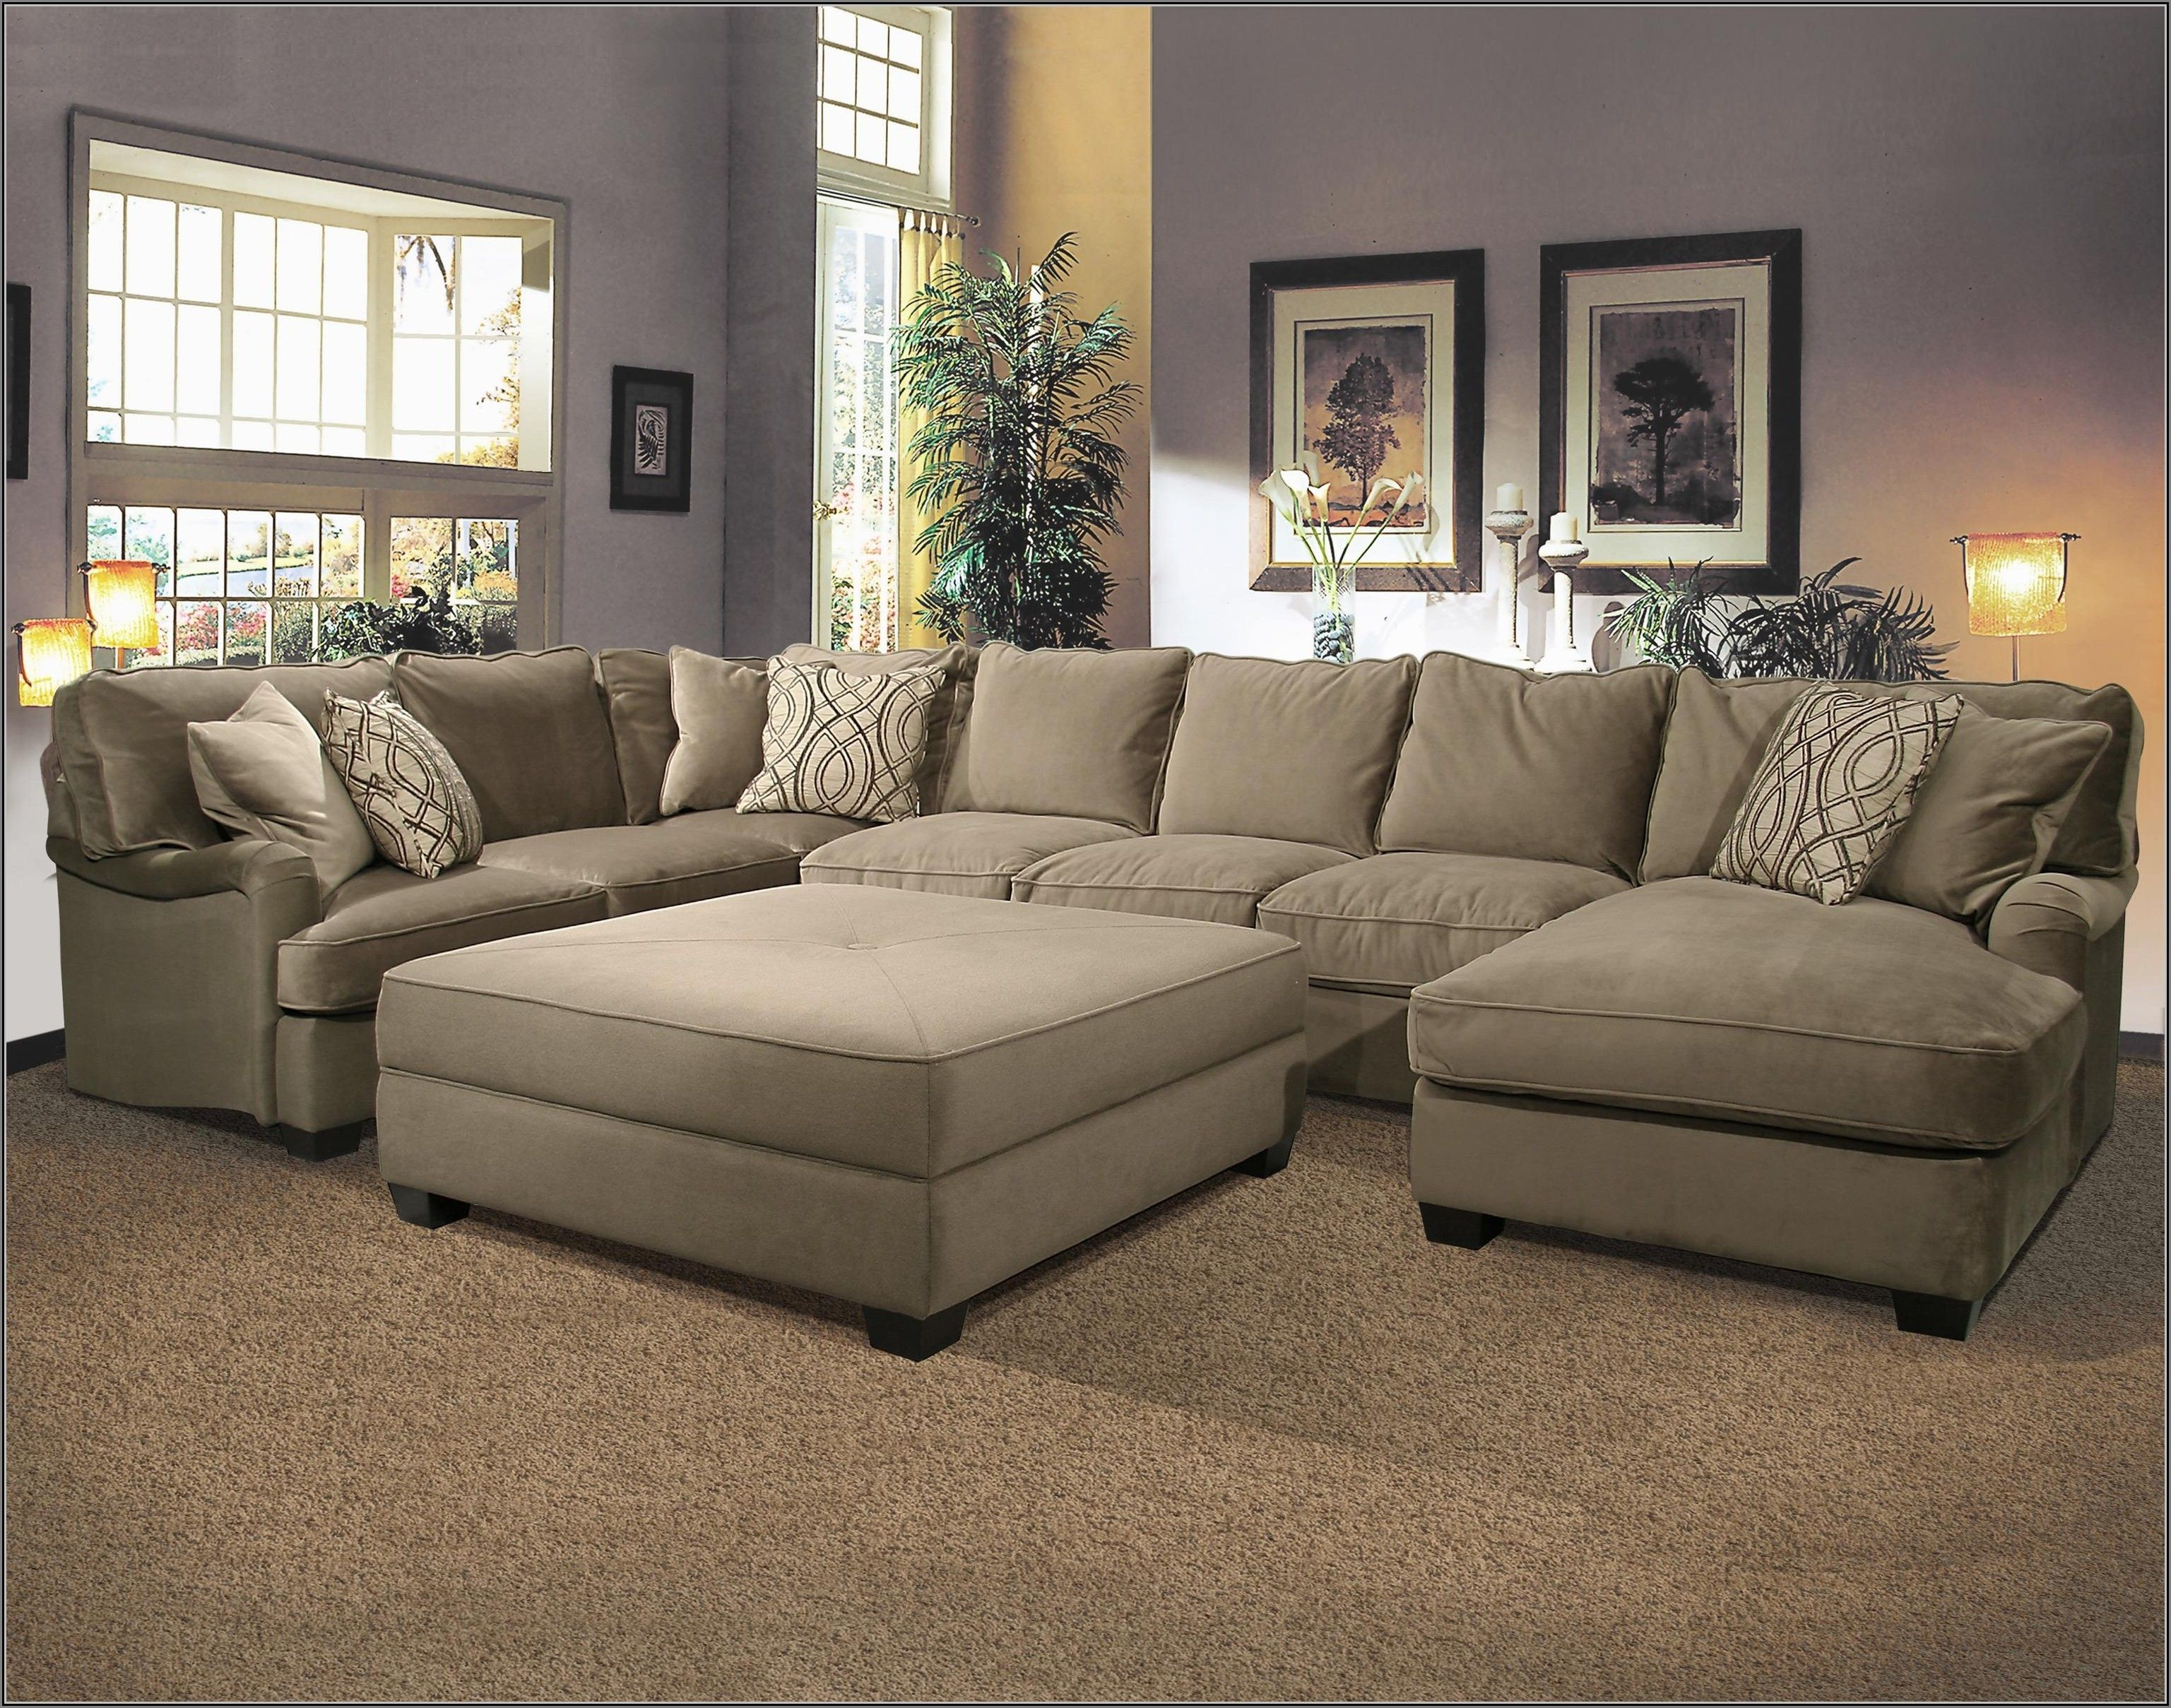 Big Sofa In A Small Room Couches With Large Ottoman In 2019 House Decor